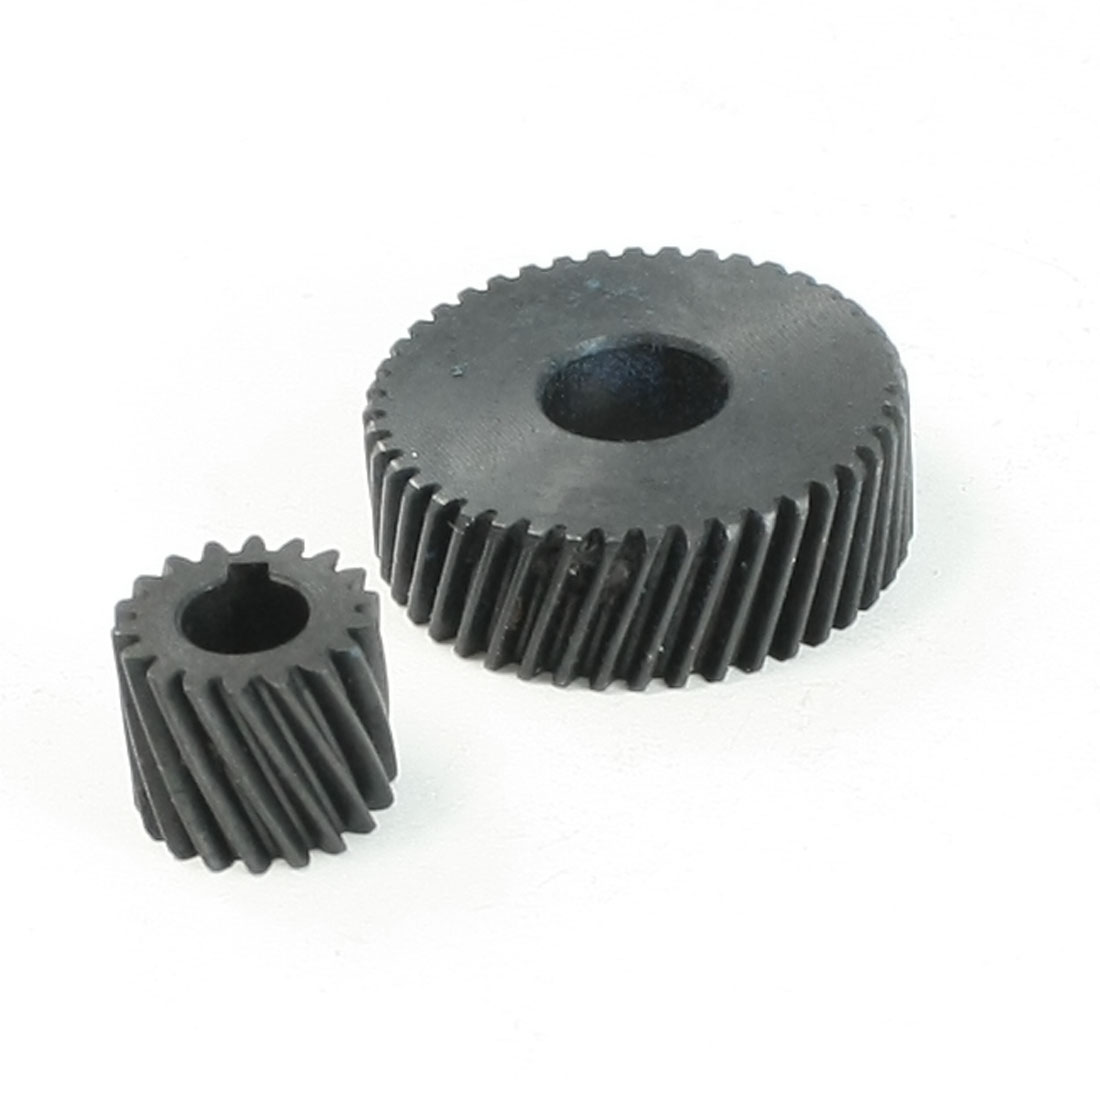 Repair Part Spiral Bevel Gear Pinion Set for Hitachi 110 Marble Machine